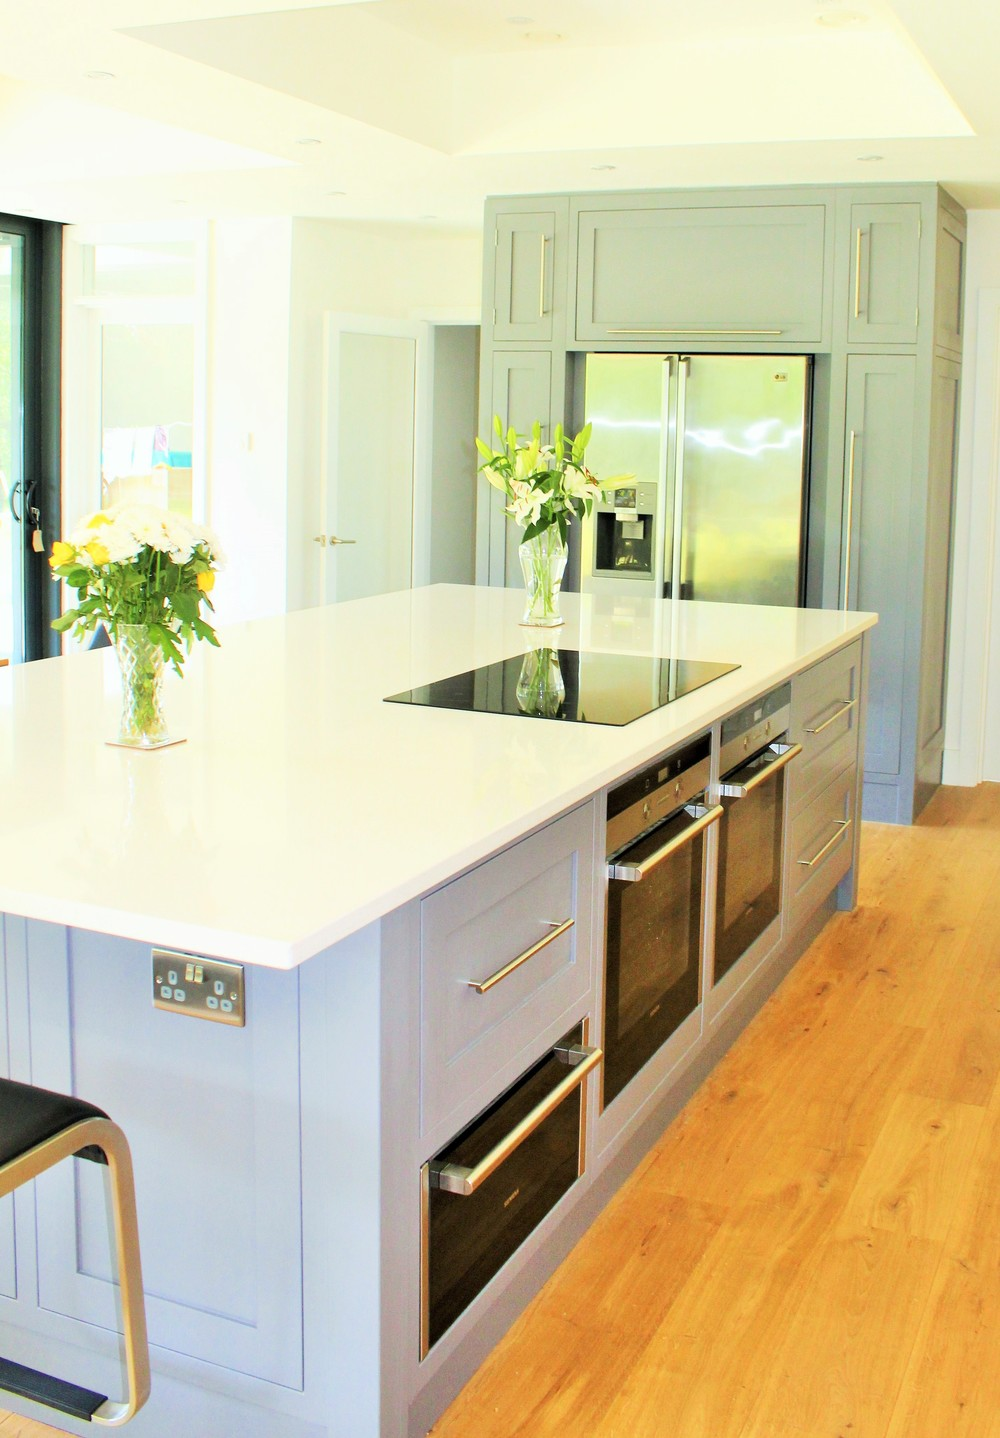 Glanton - an example of a custom-made paint colour for a painted kitchen.